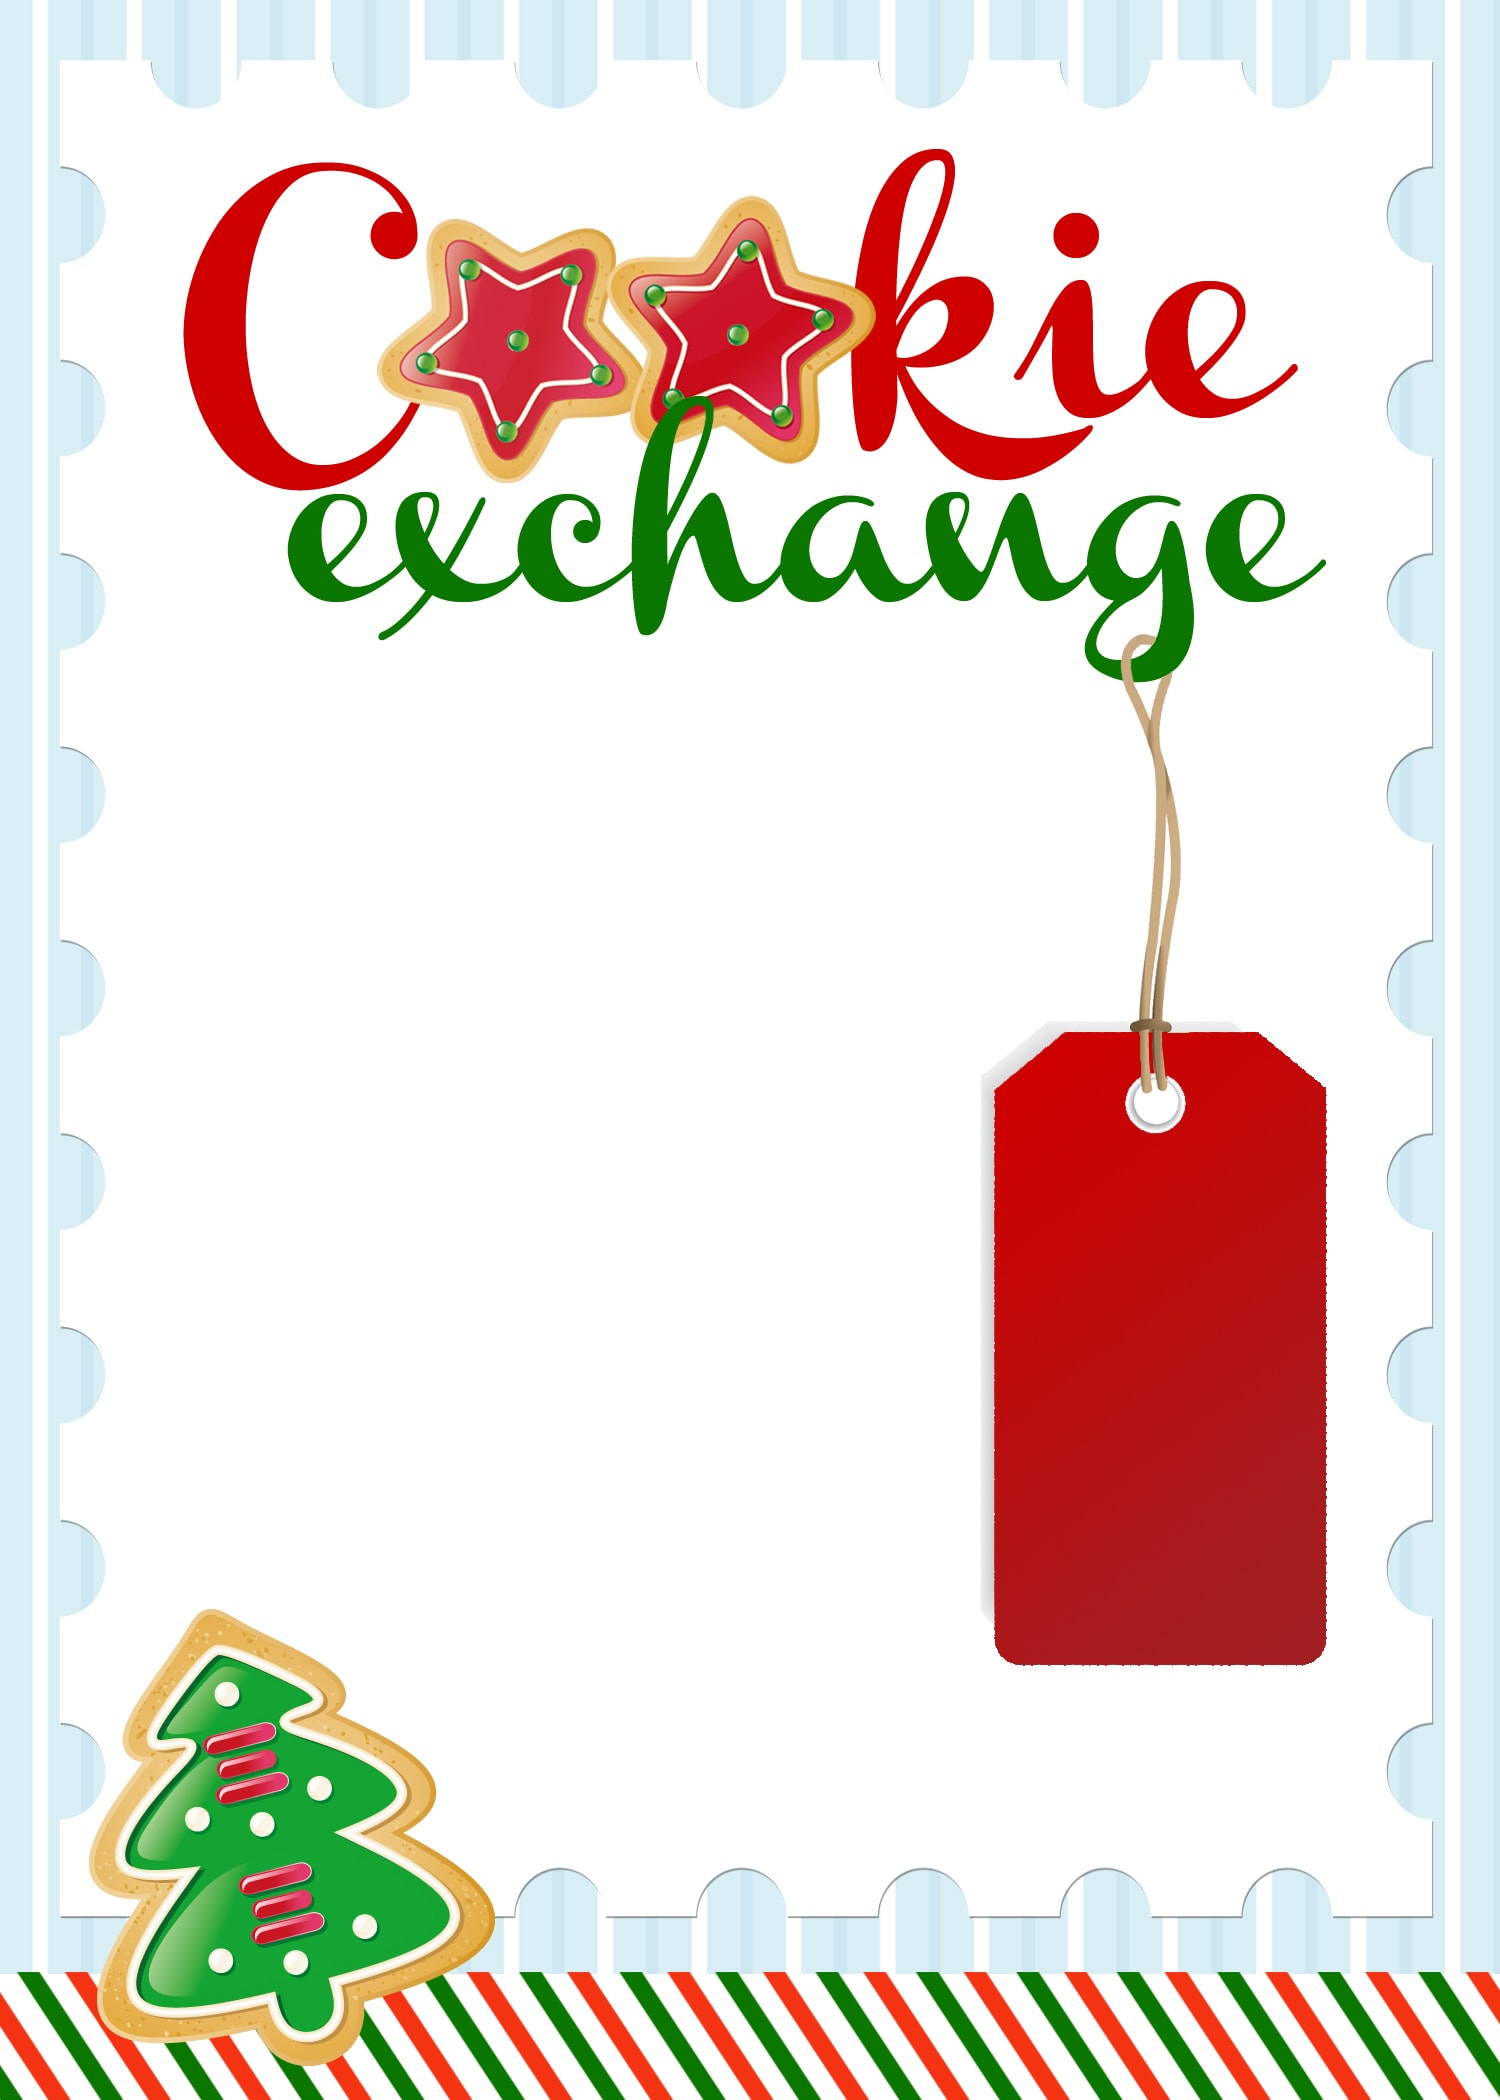 Https://howtonestforless.com/wp Content/uploads/2012/11/cookie Exchange  Invitation  Free Template For Party Invitation